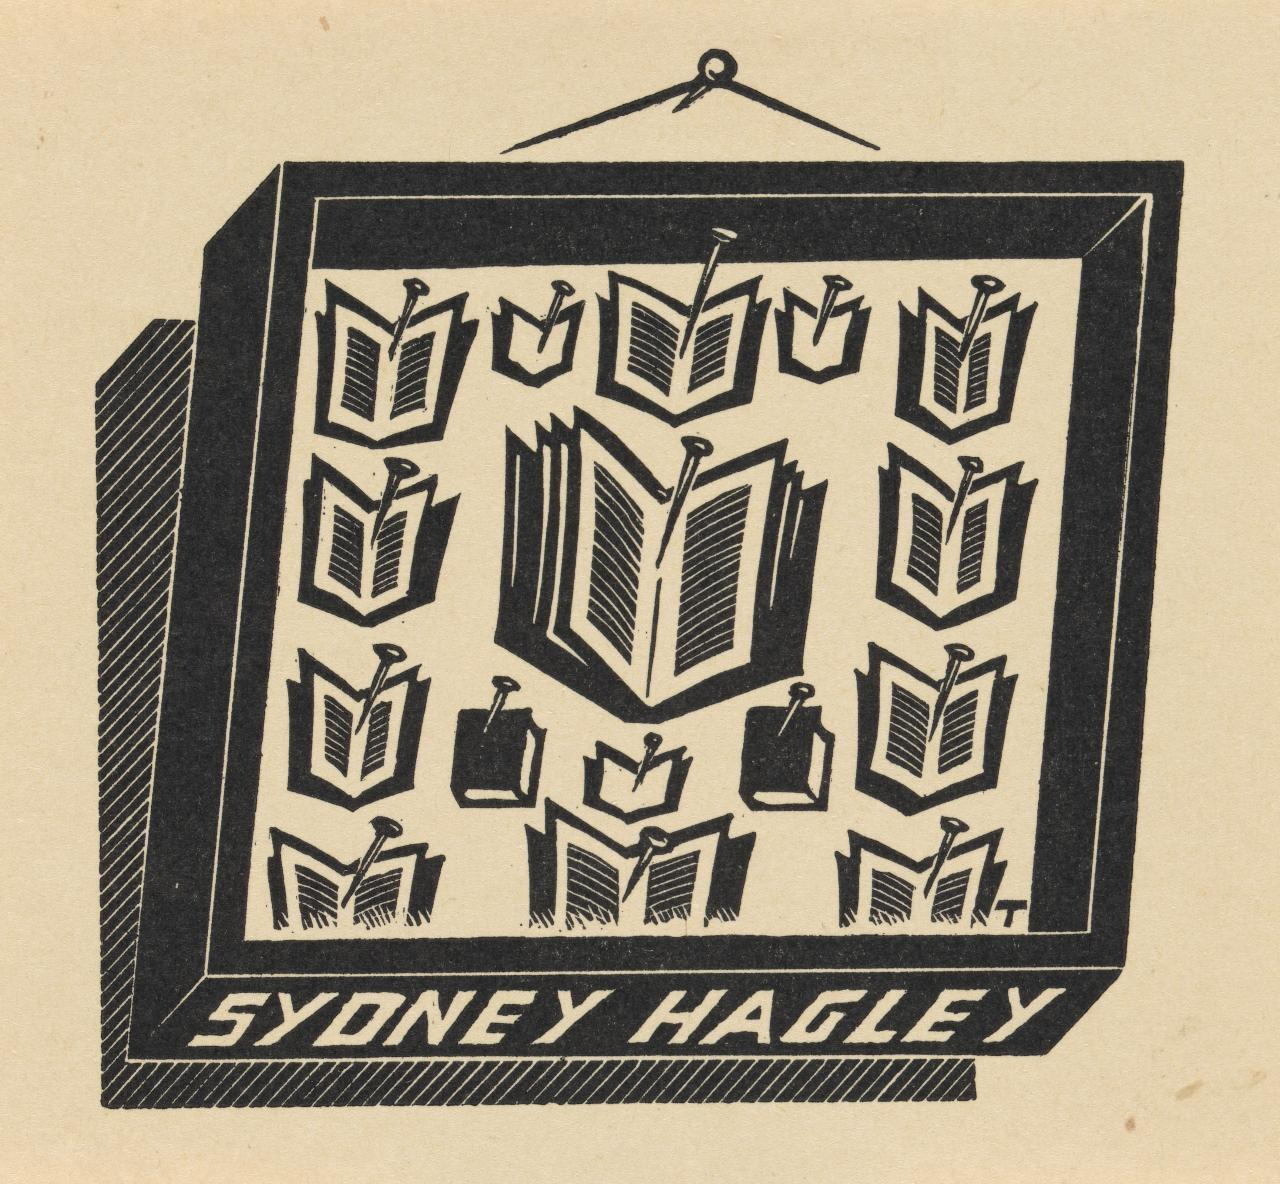 Bookplate: Sydney Hagley (Framed collection of books, pinned as specimens)